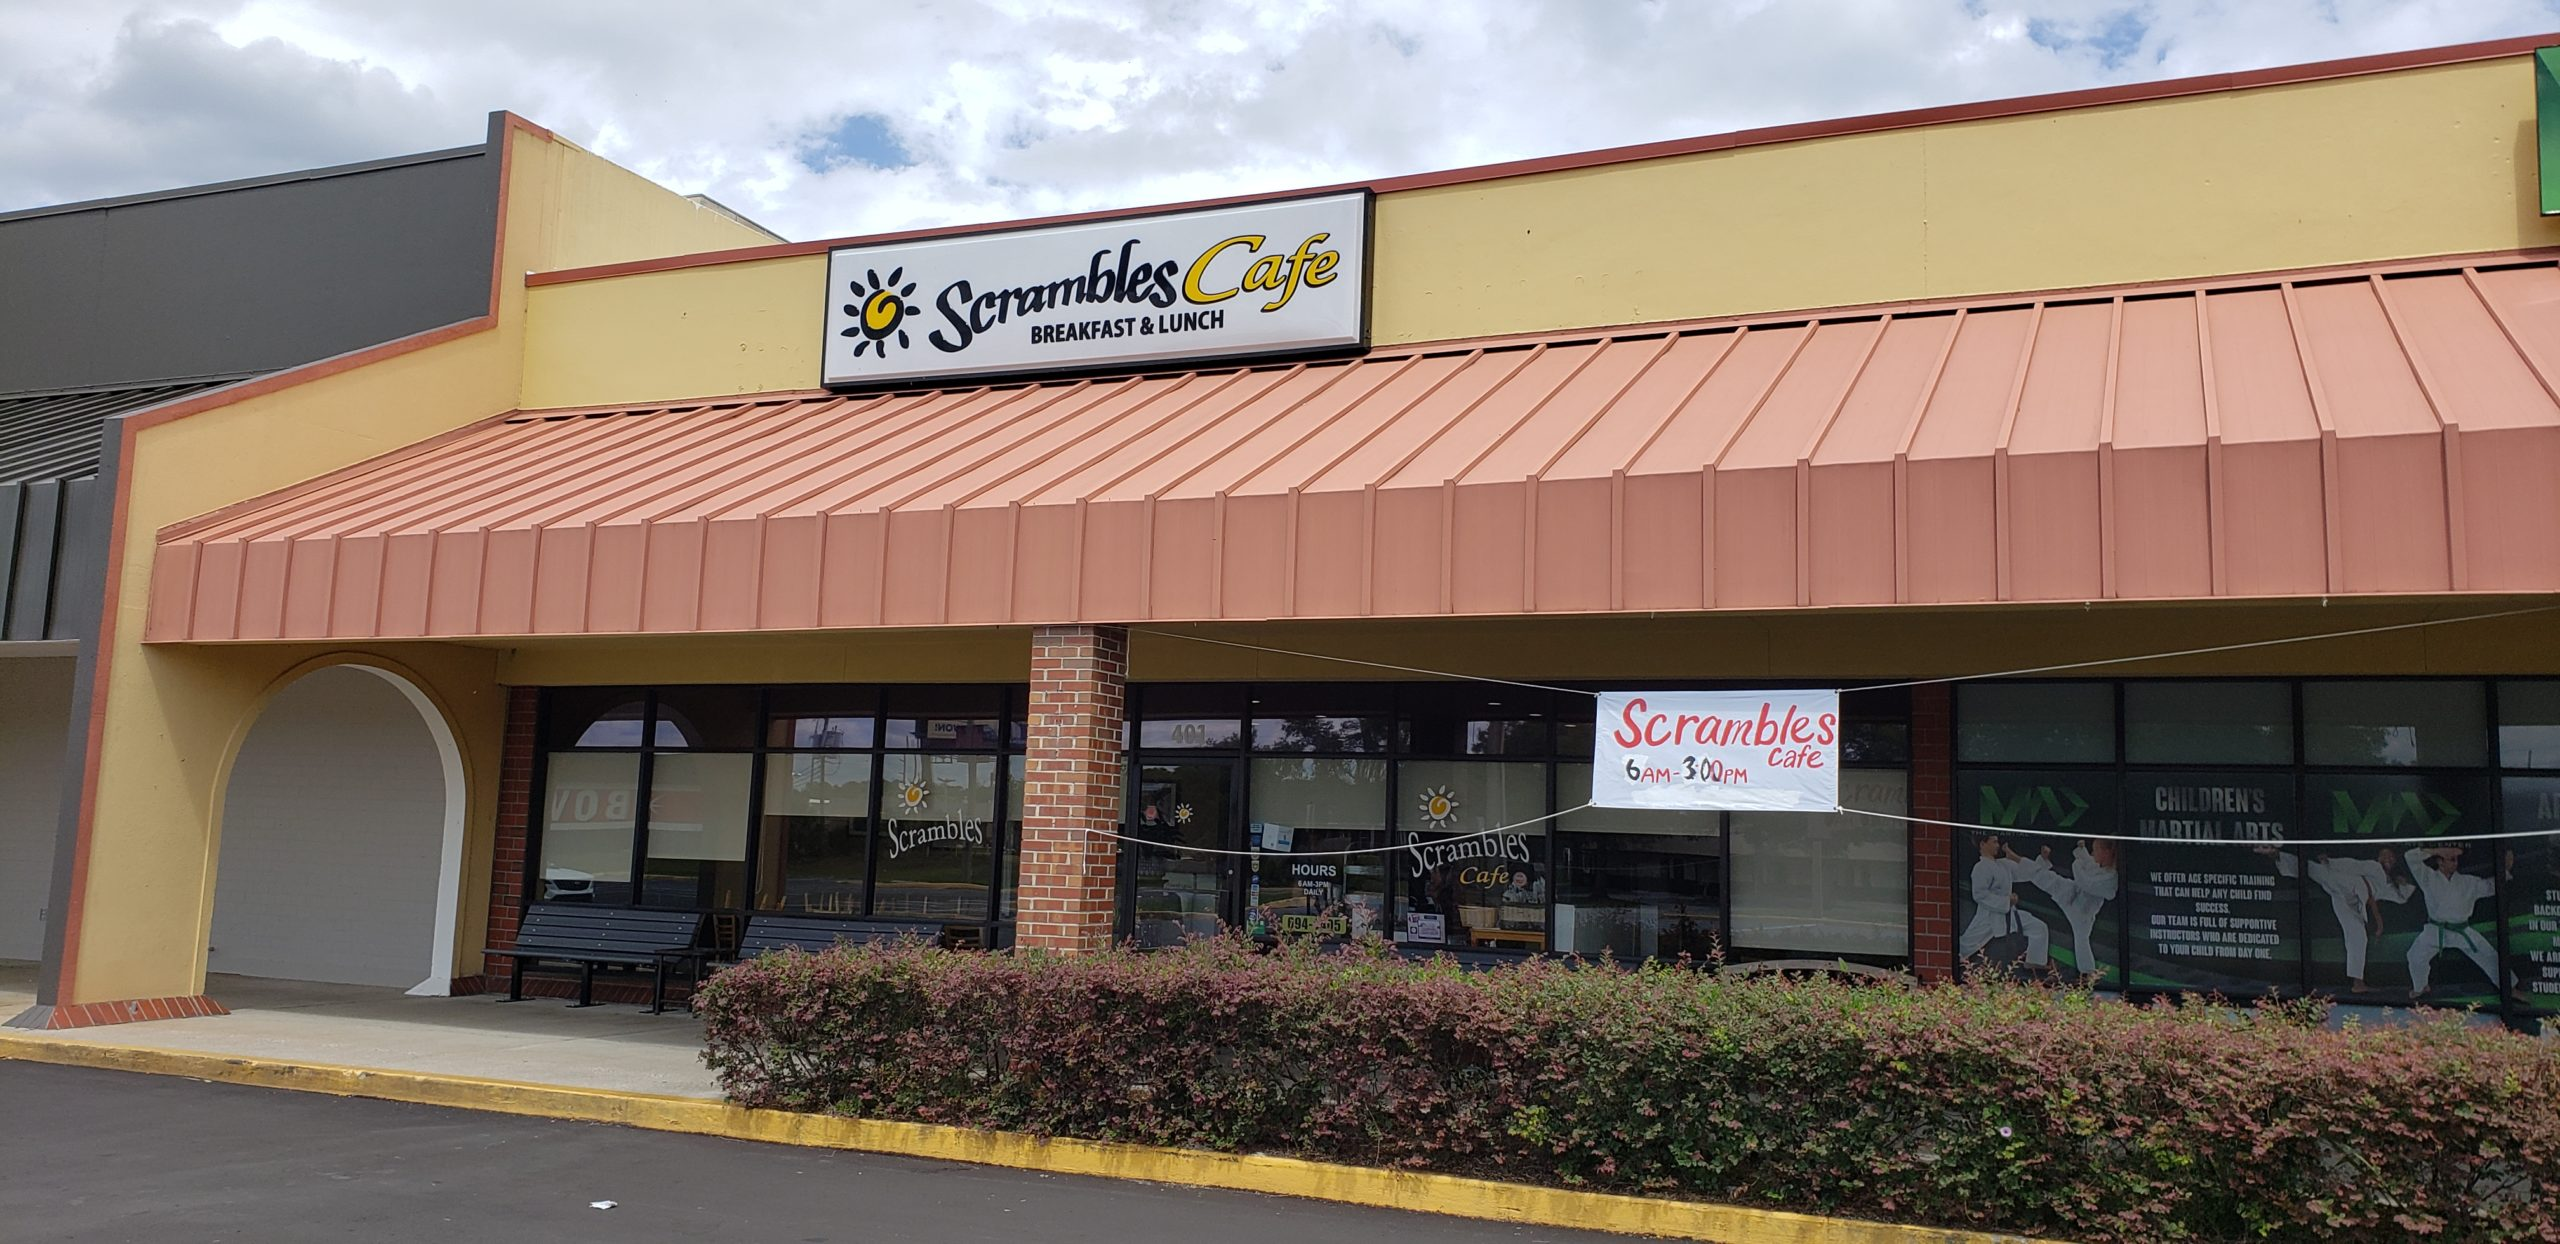 Scrambles Reopens after COVID-19